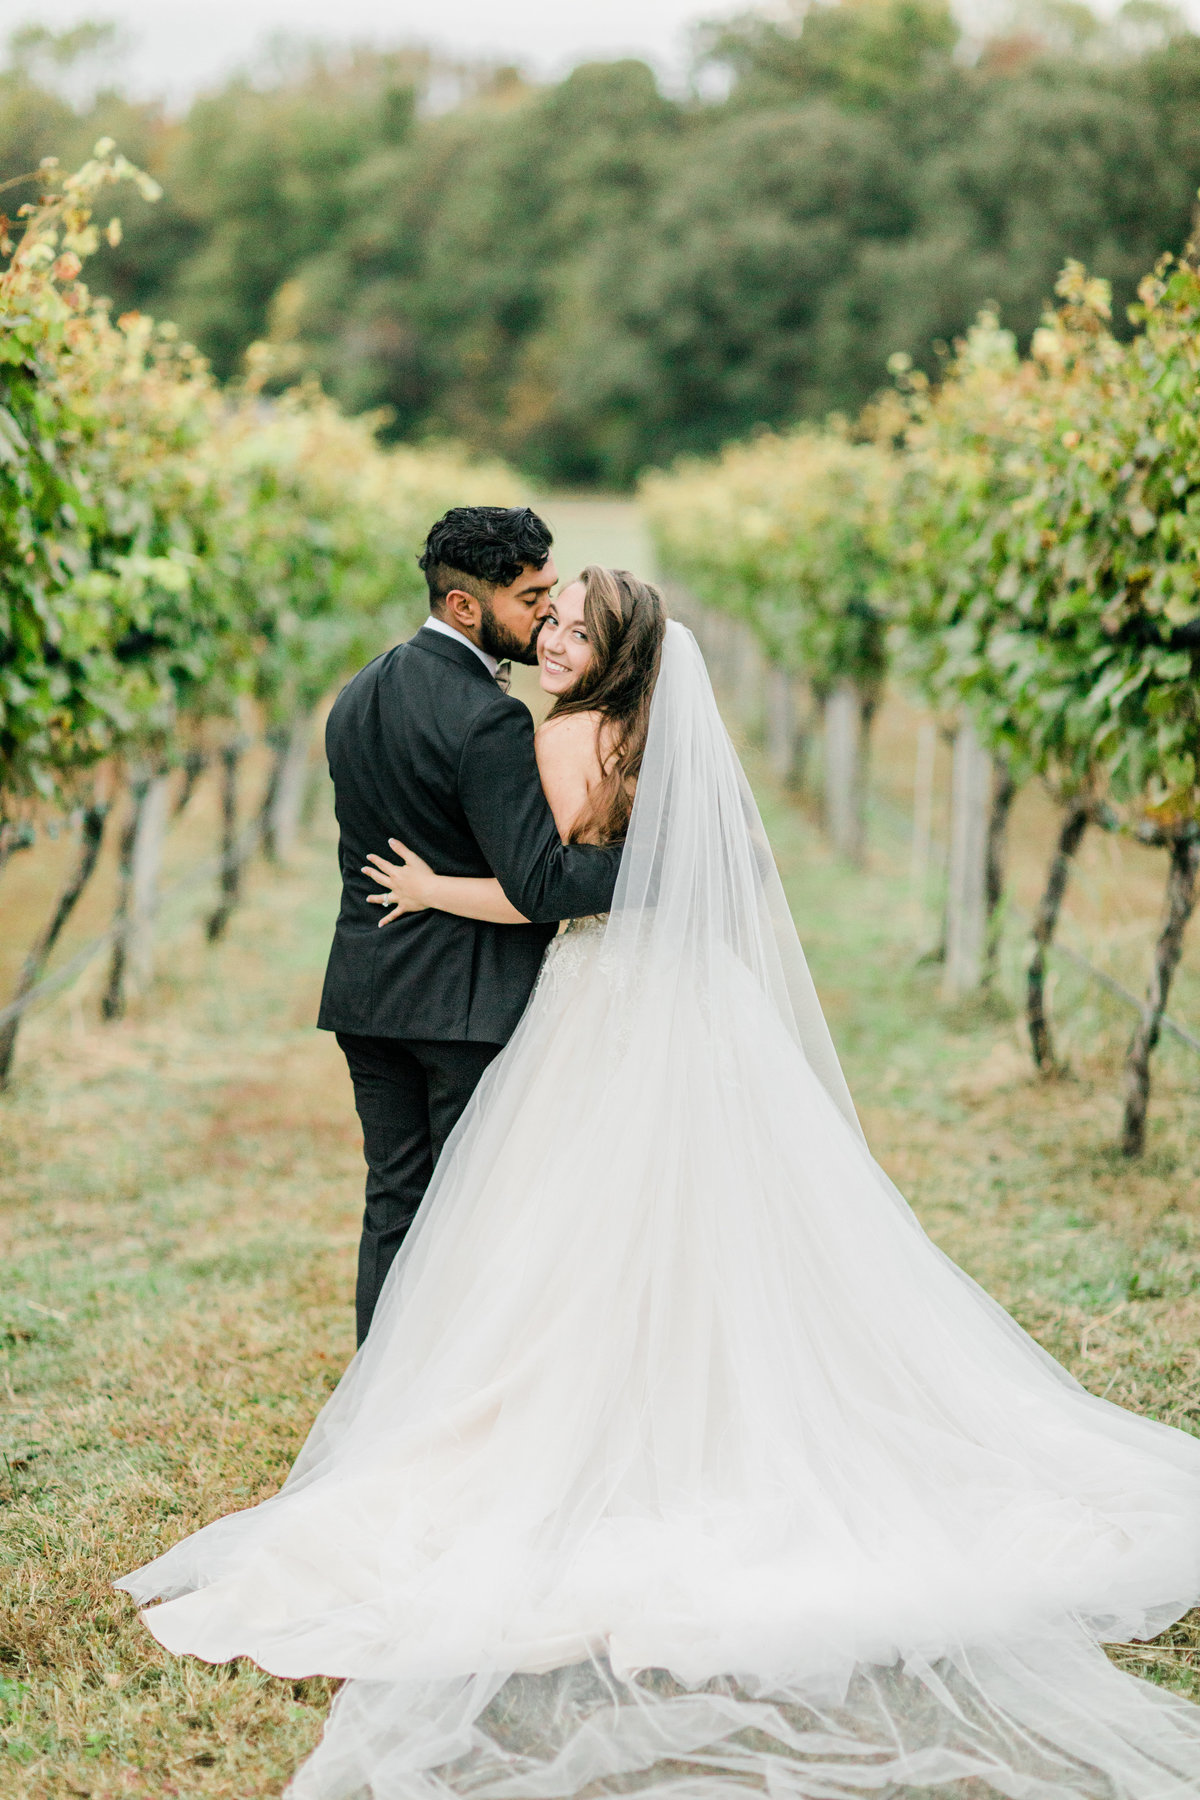 Williamsburg_Winery_Fall_Wedding_Virginia_DC_Photographer_Angelika_Johns_Photography-0066